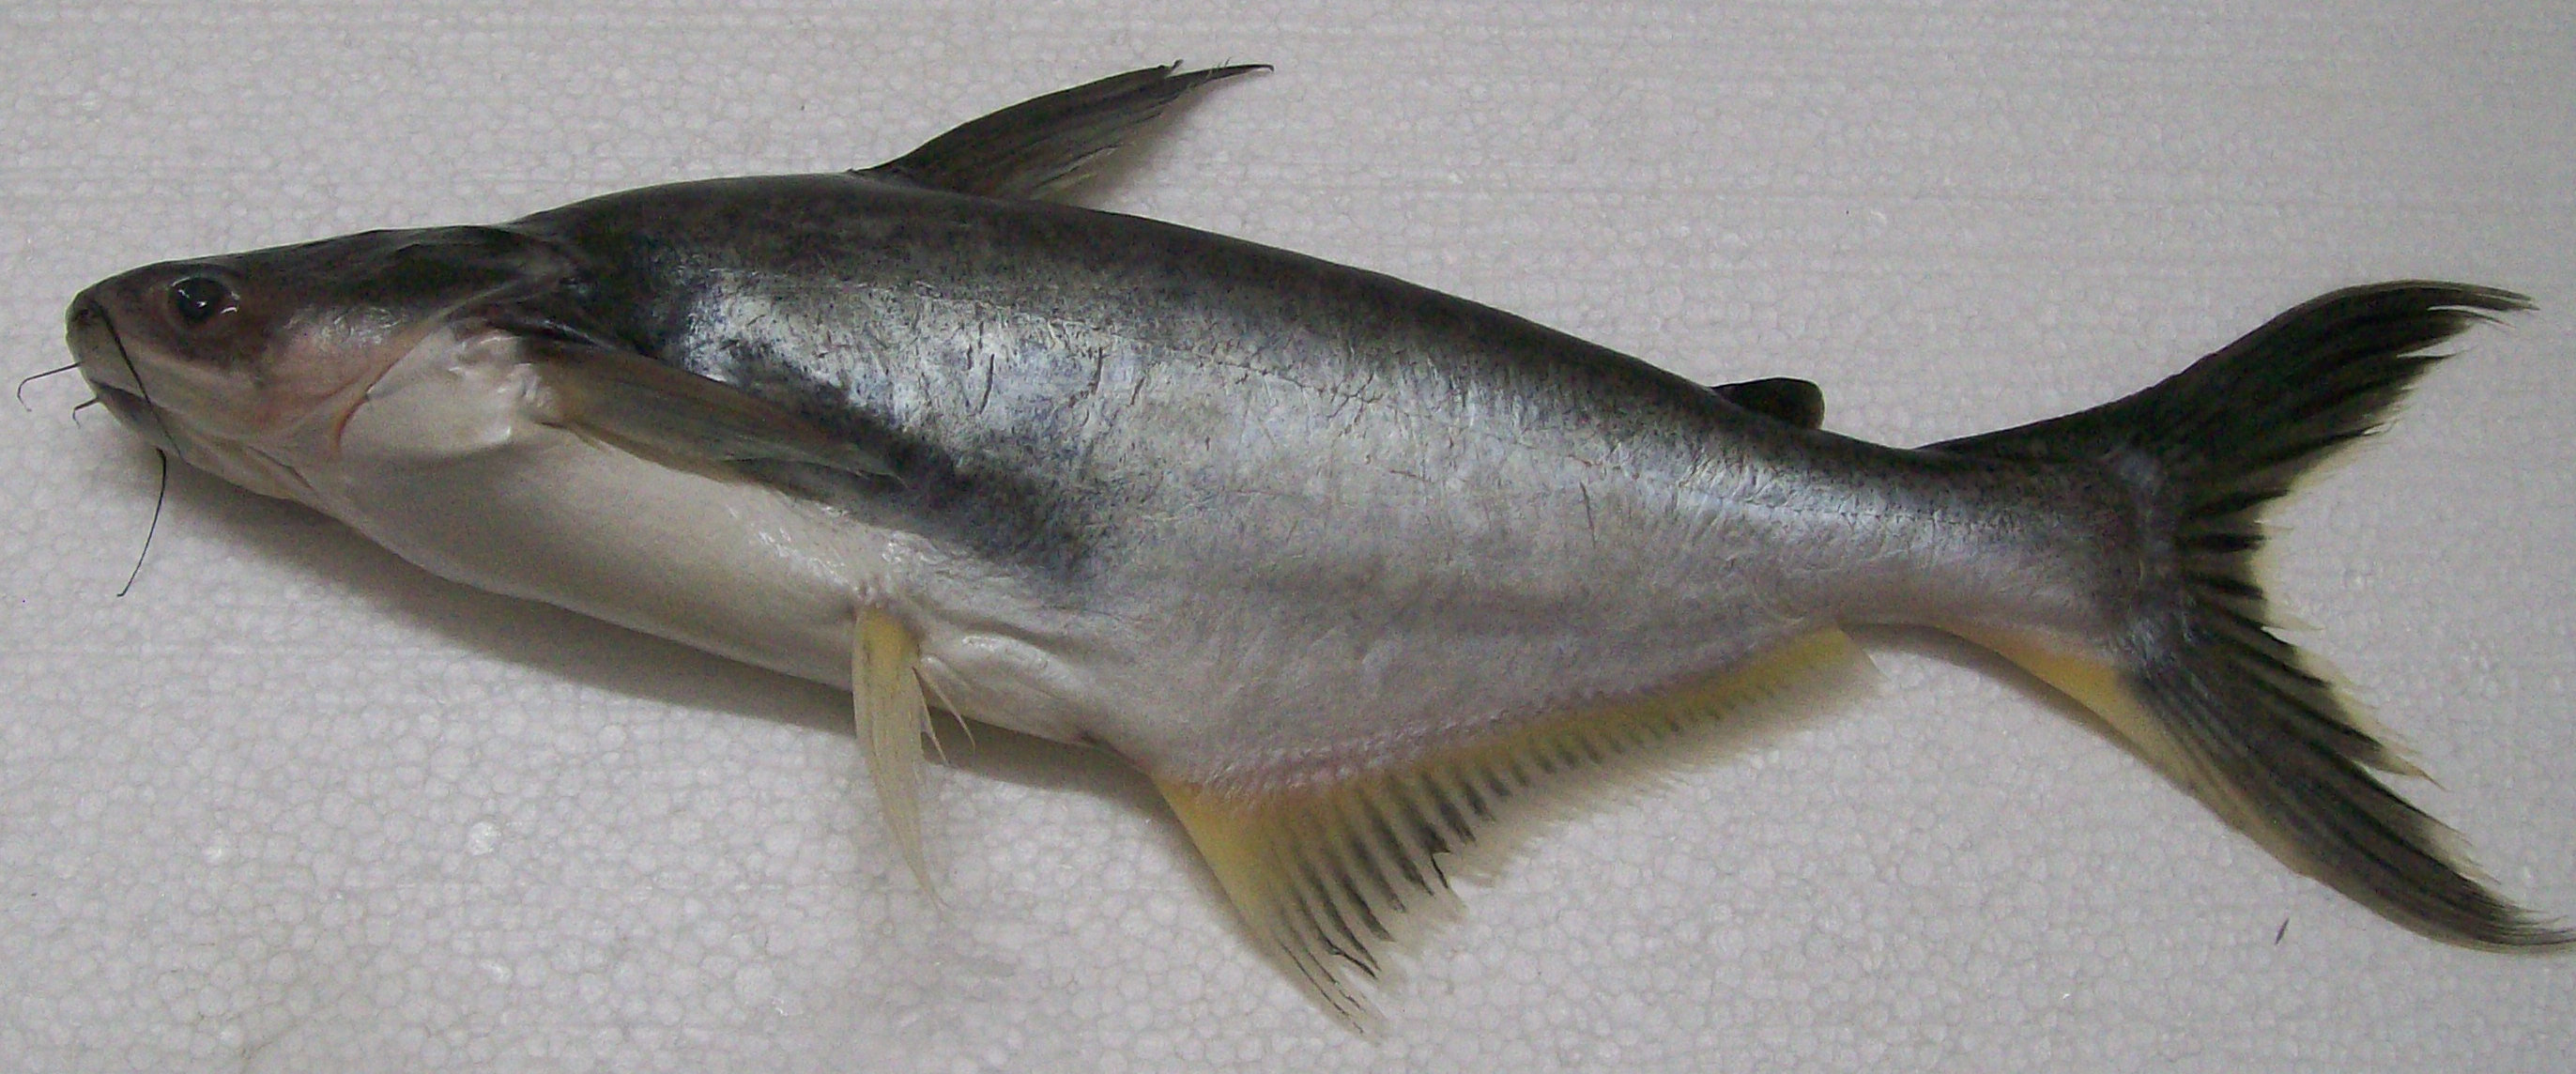 Pangasius bing images for What is pangasius fish